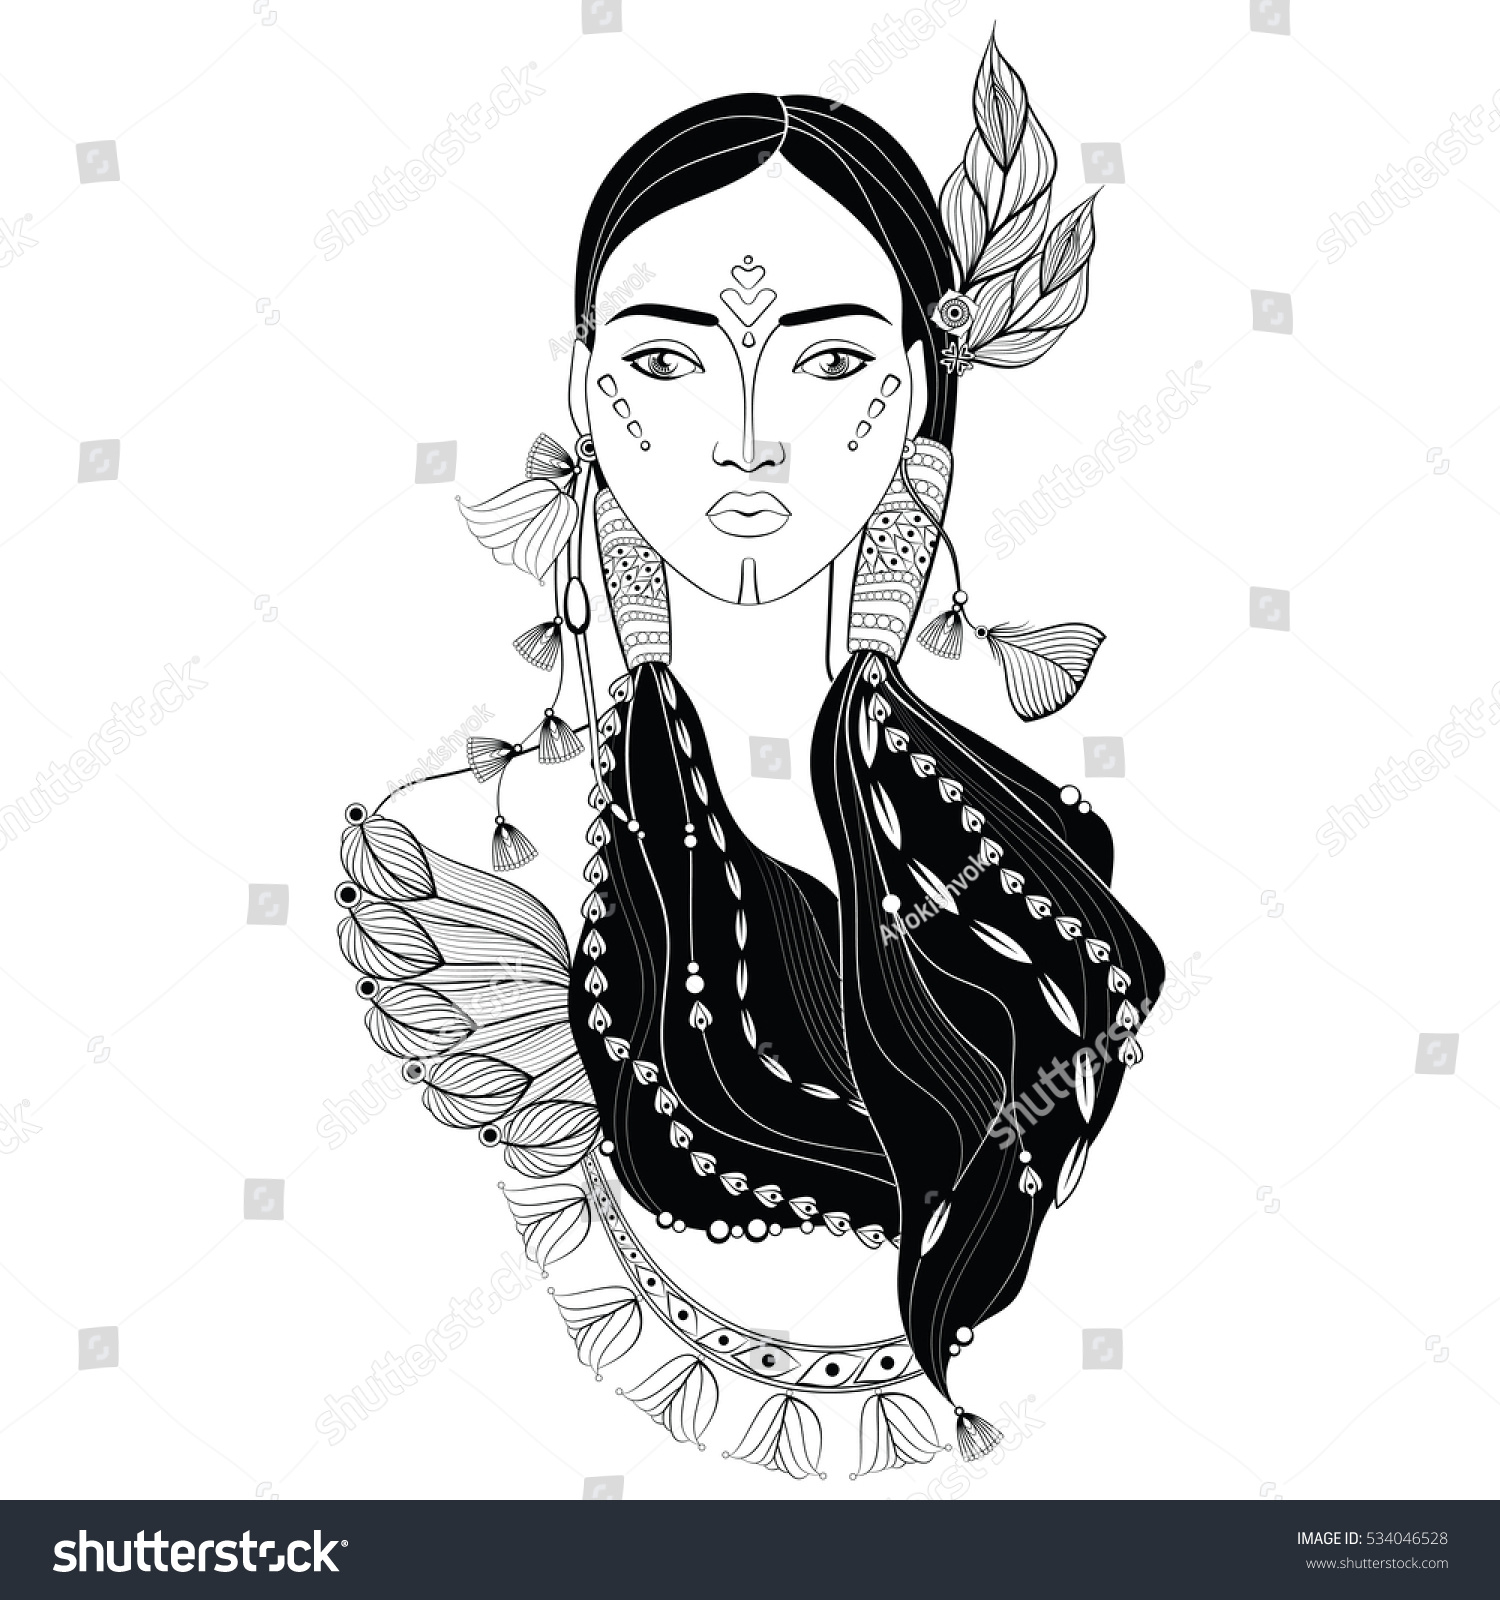 Beautiful indian woman in zentangle style hand drawn vector illustration sketch for adult coloring